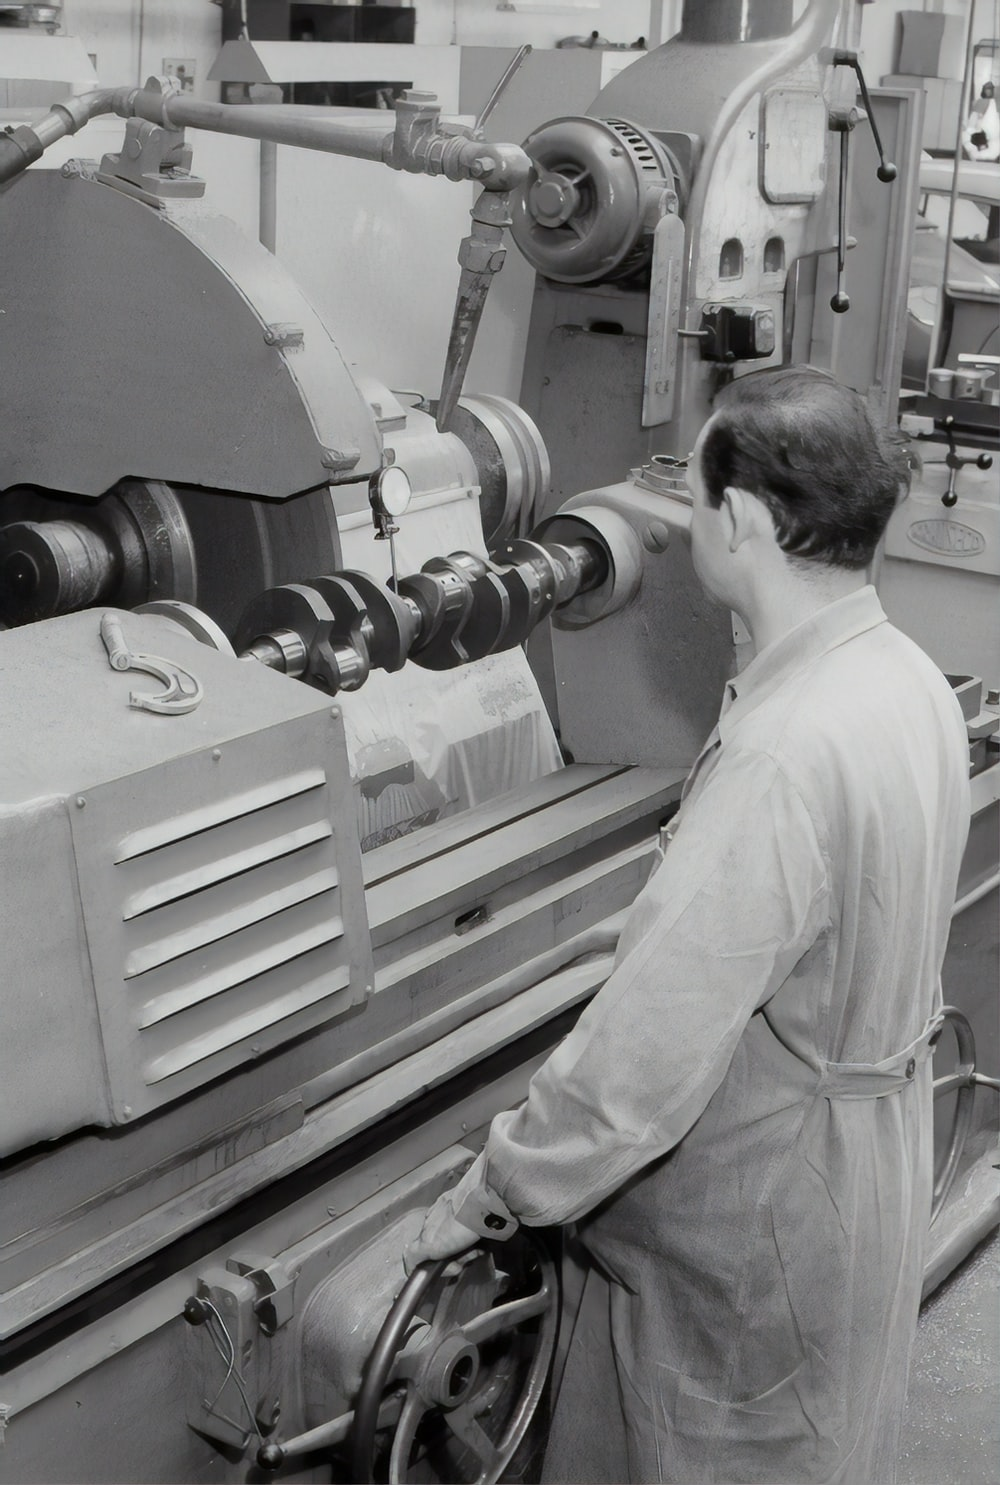 man in white shirt standing in front of white and black machine